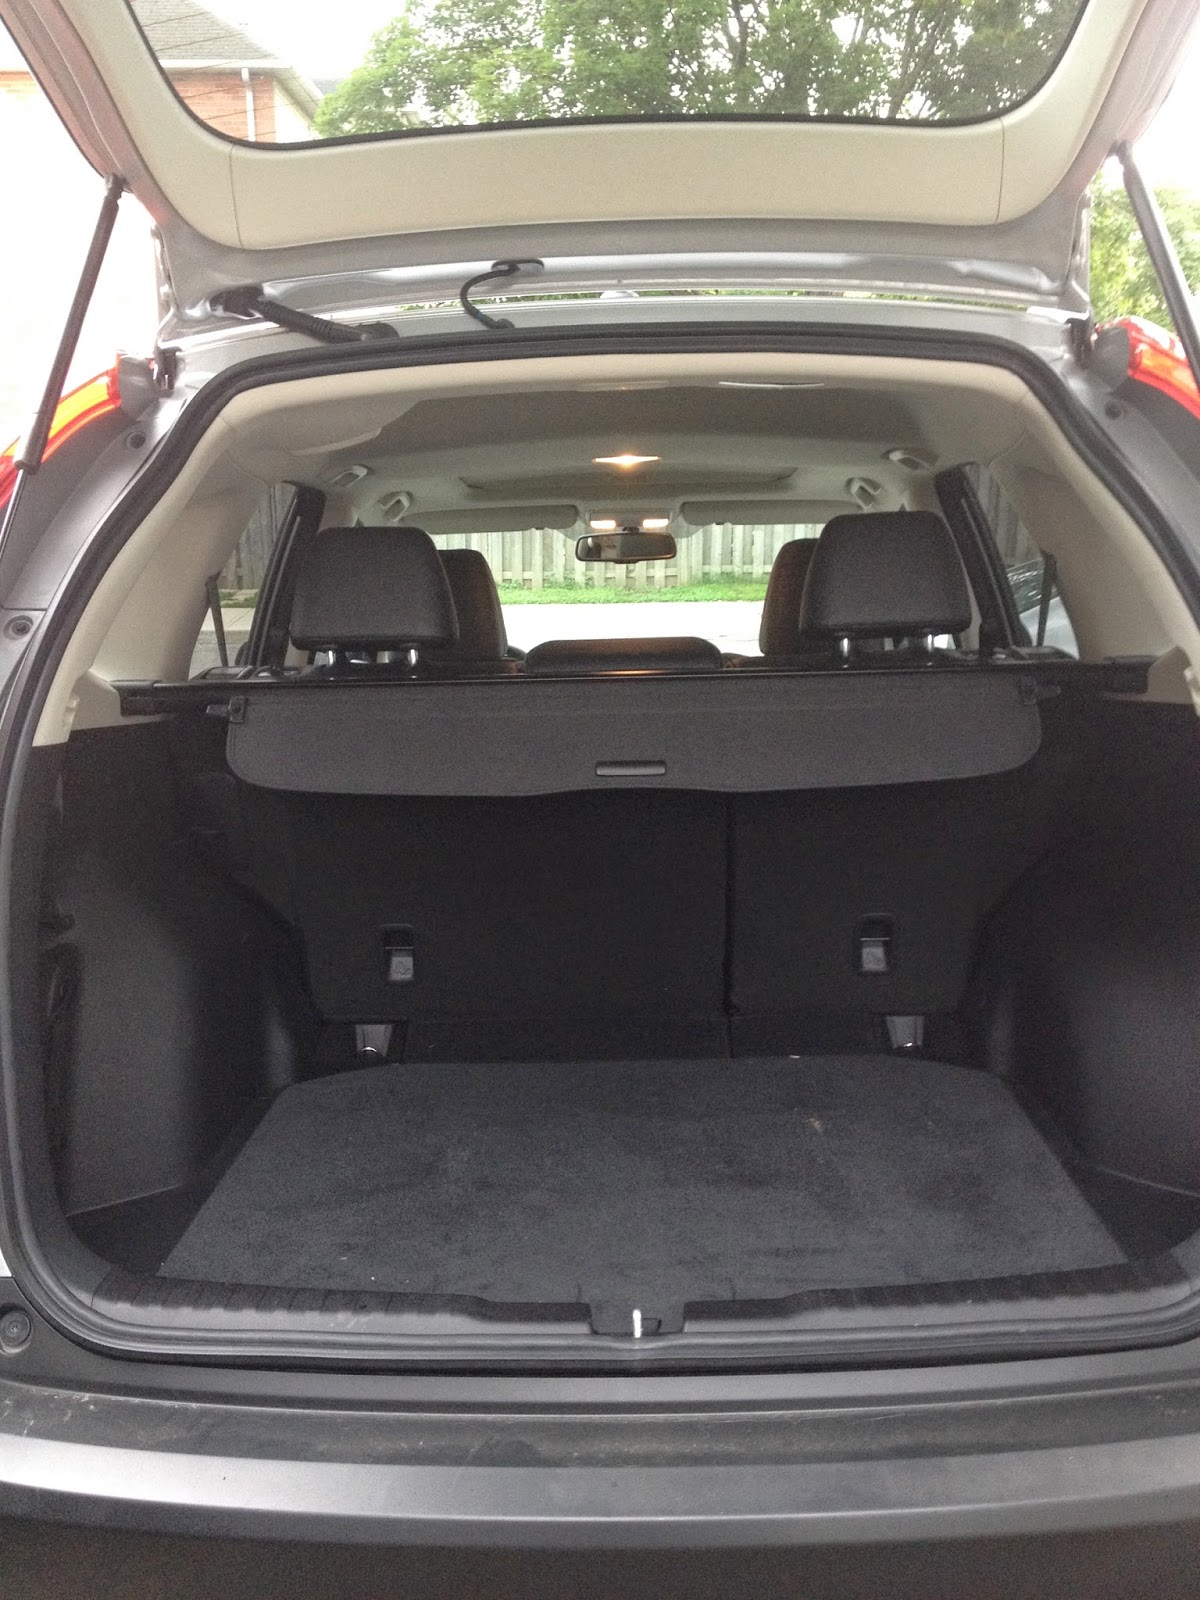 Back Storage of the Honda CR-V